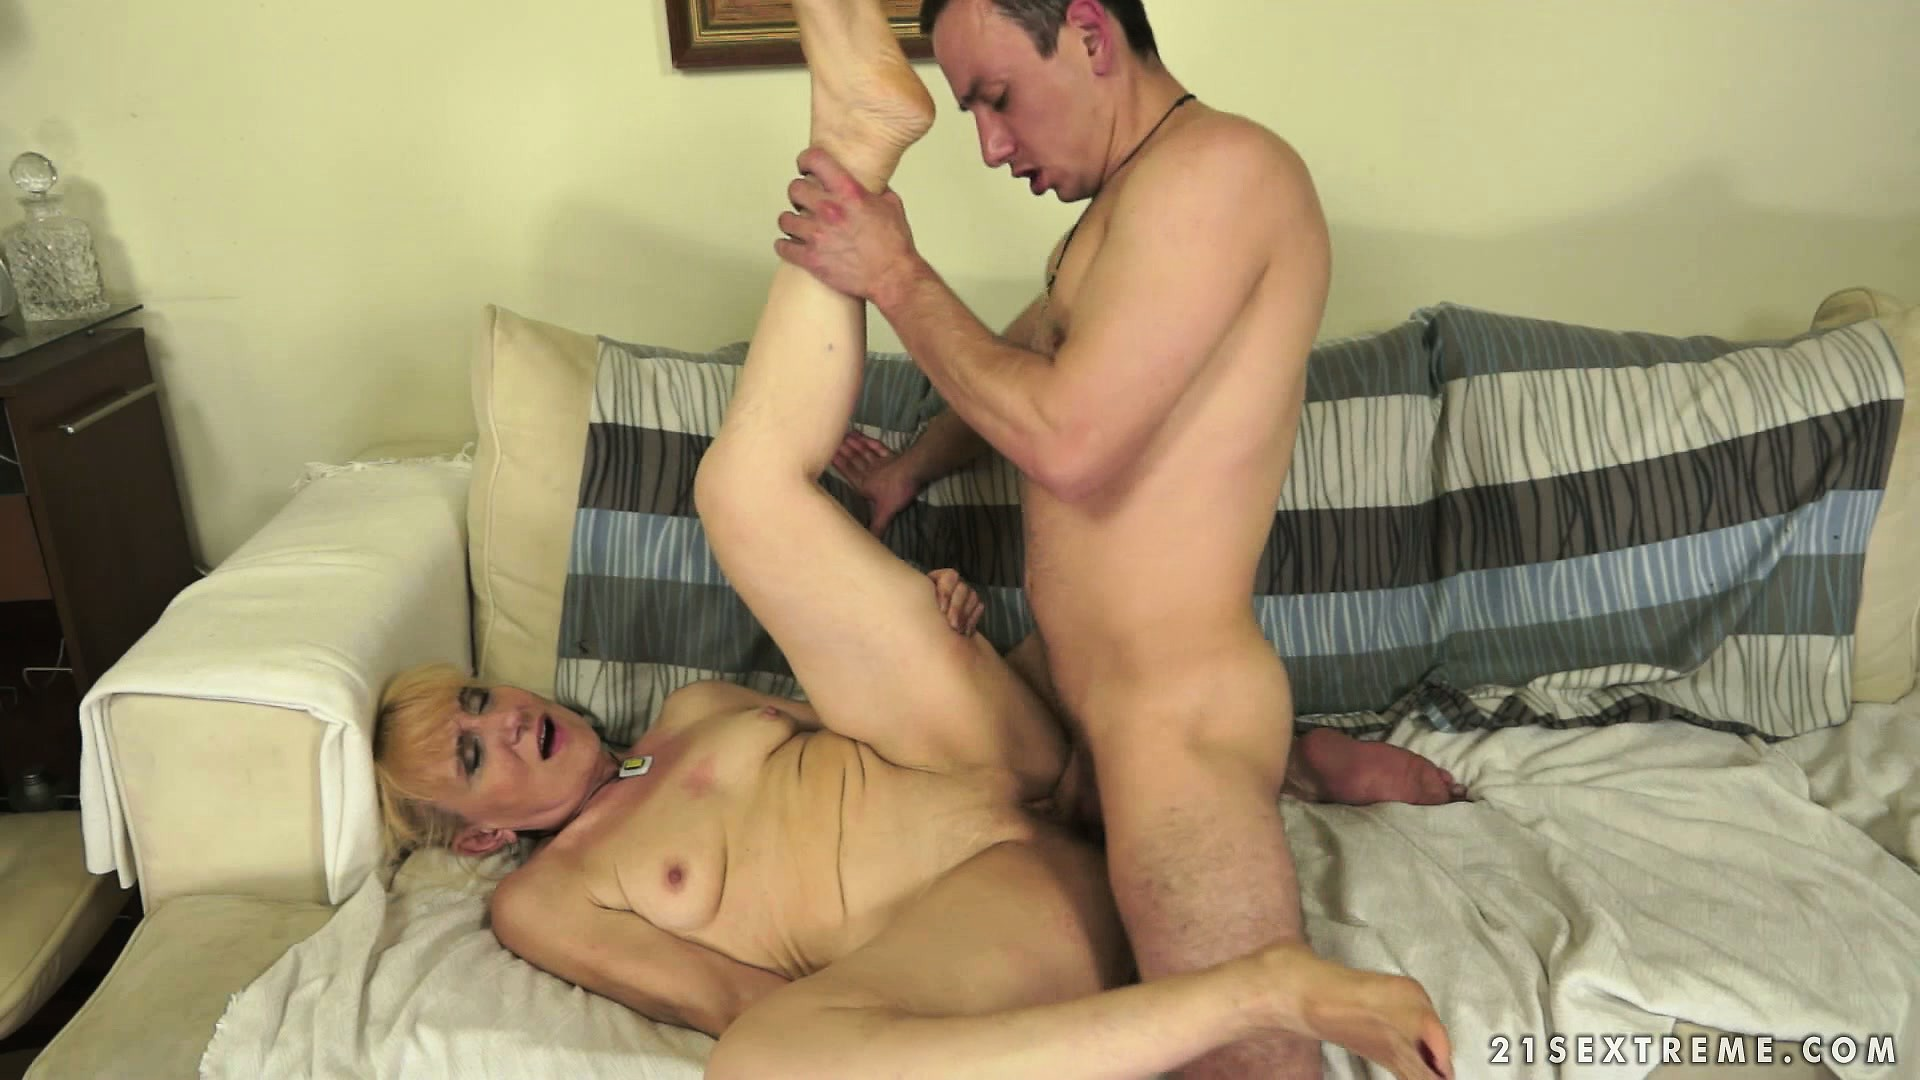 Porno Video of He's Banging His Special Old Lady And She Licks His Ass And Drinks His Cum